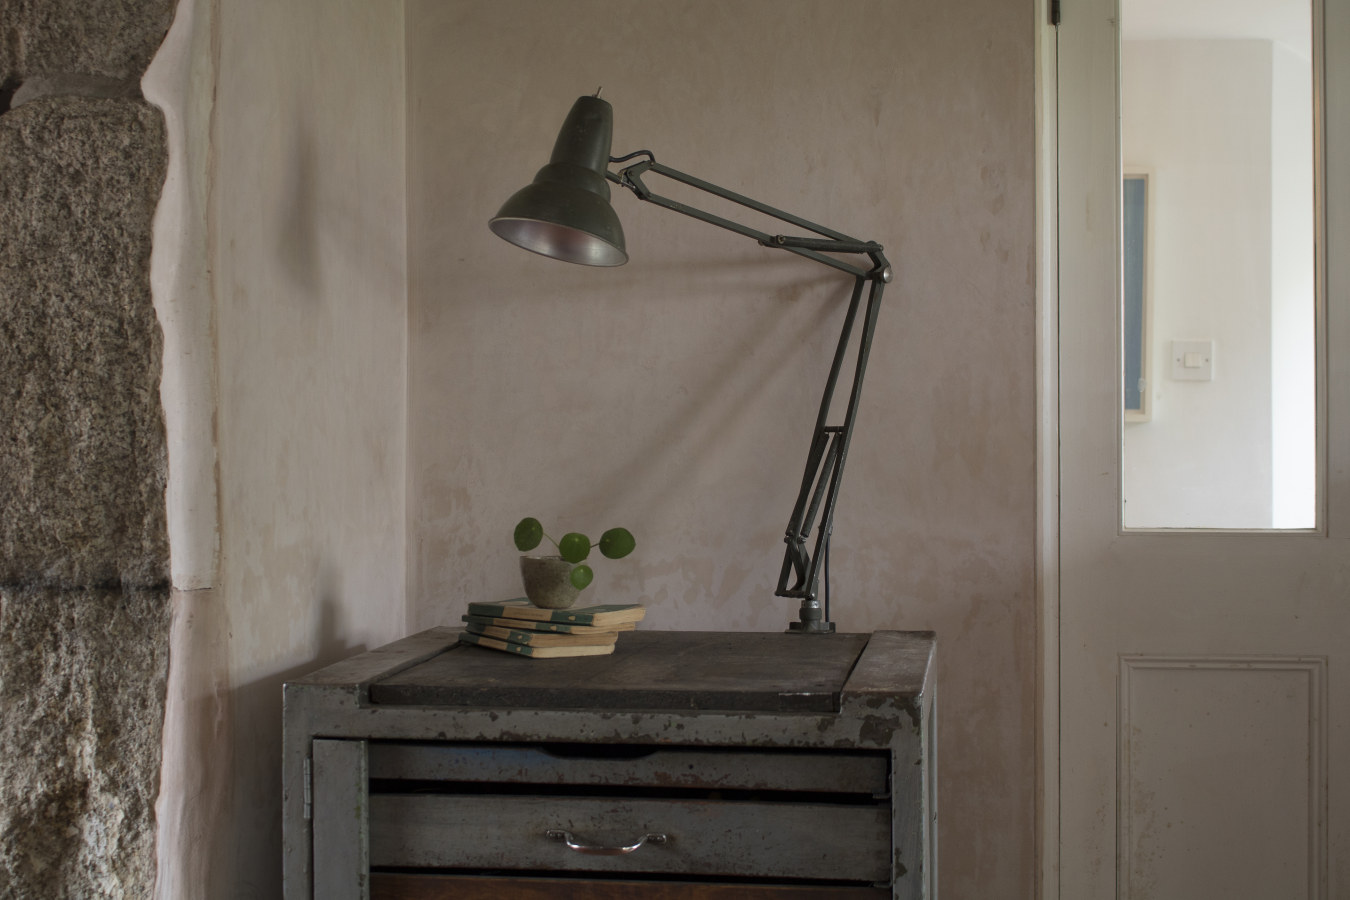 skinflint reclaimed industrial sweedish desk lamp side table